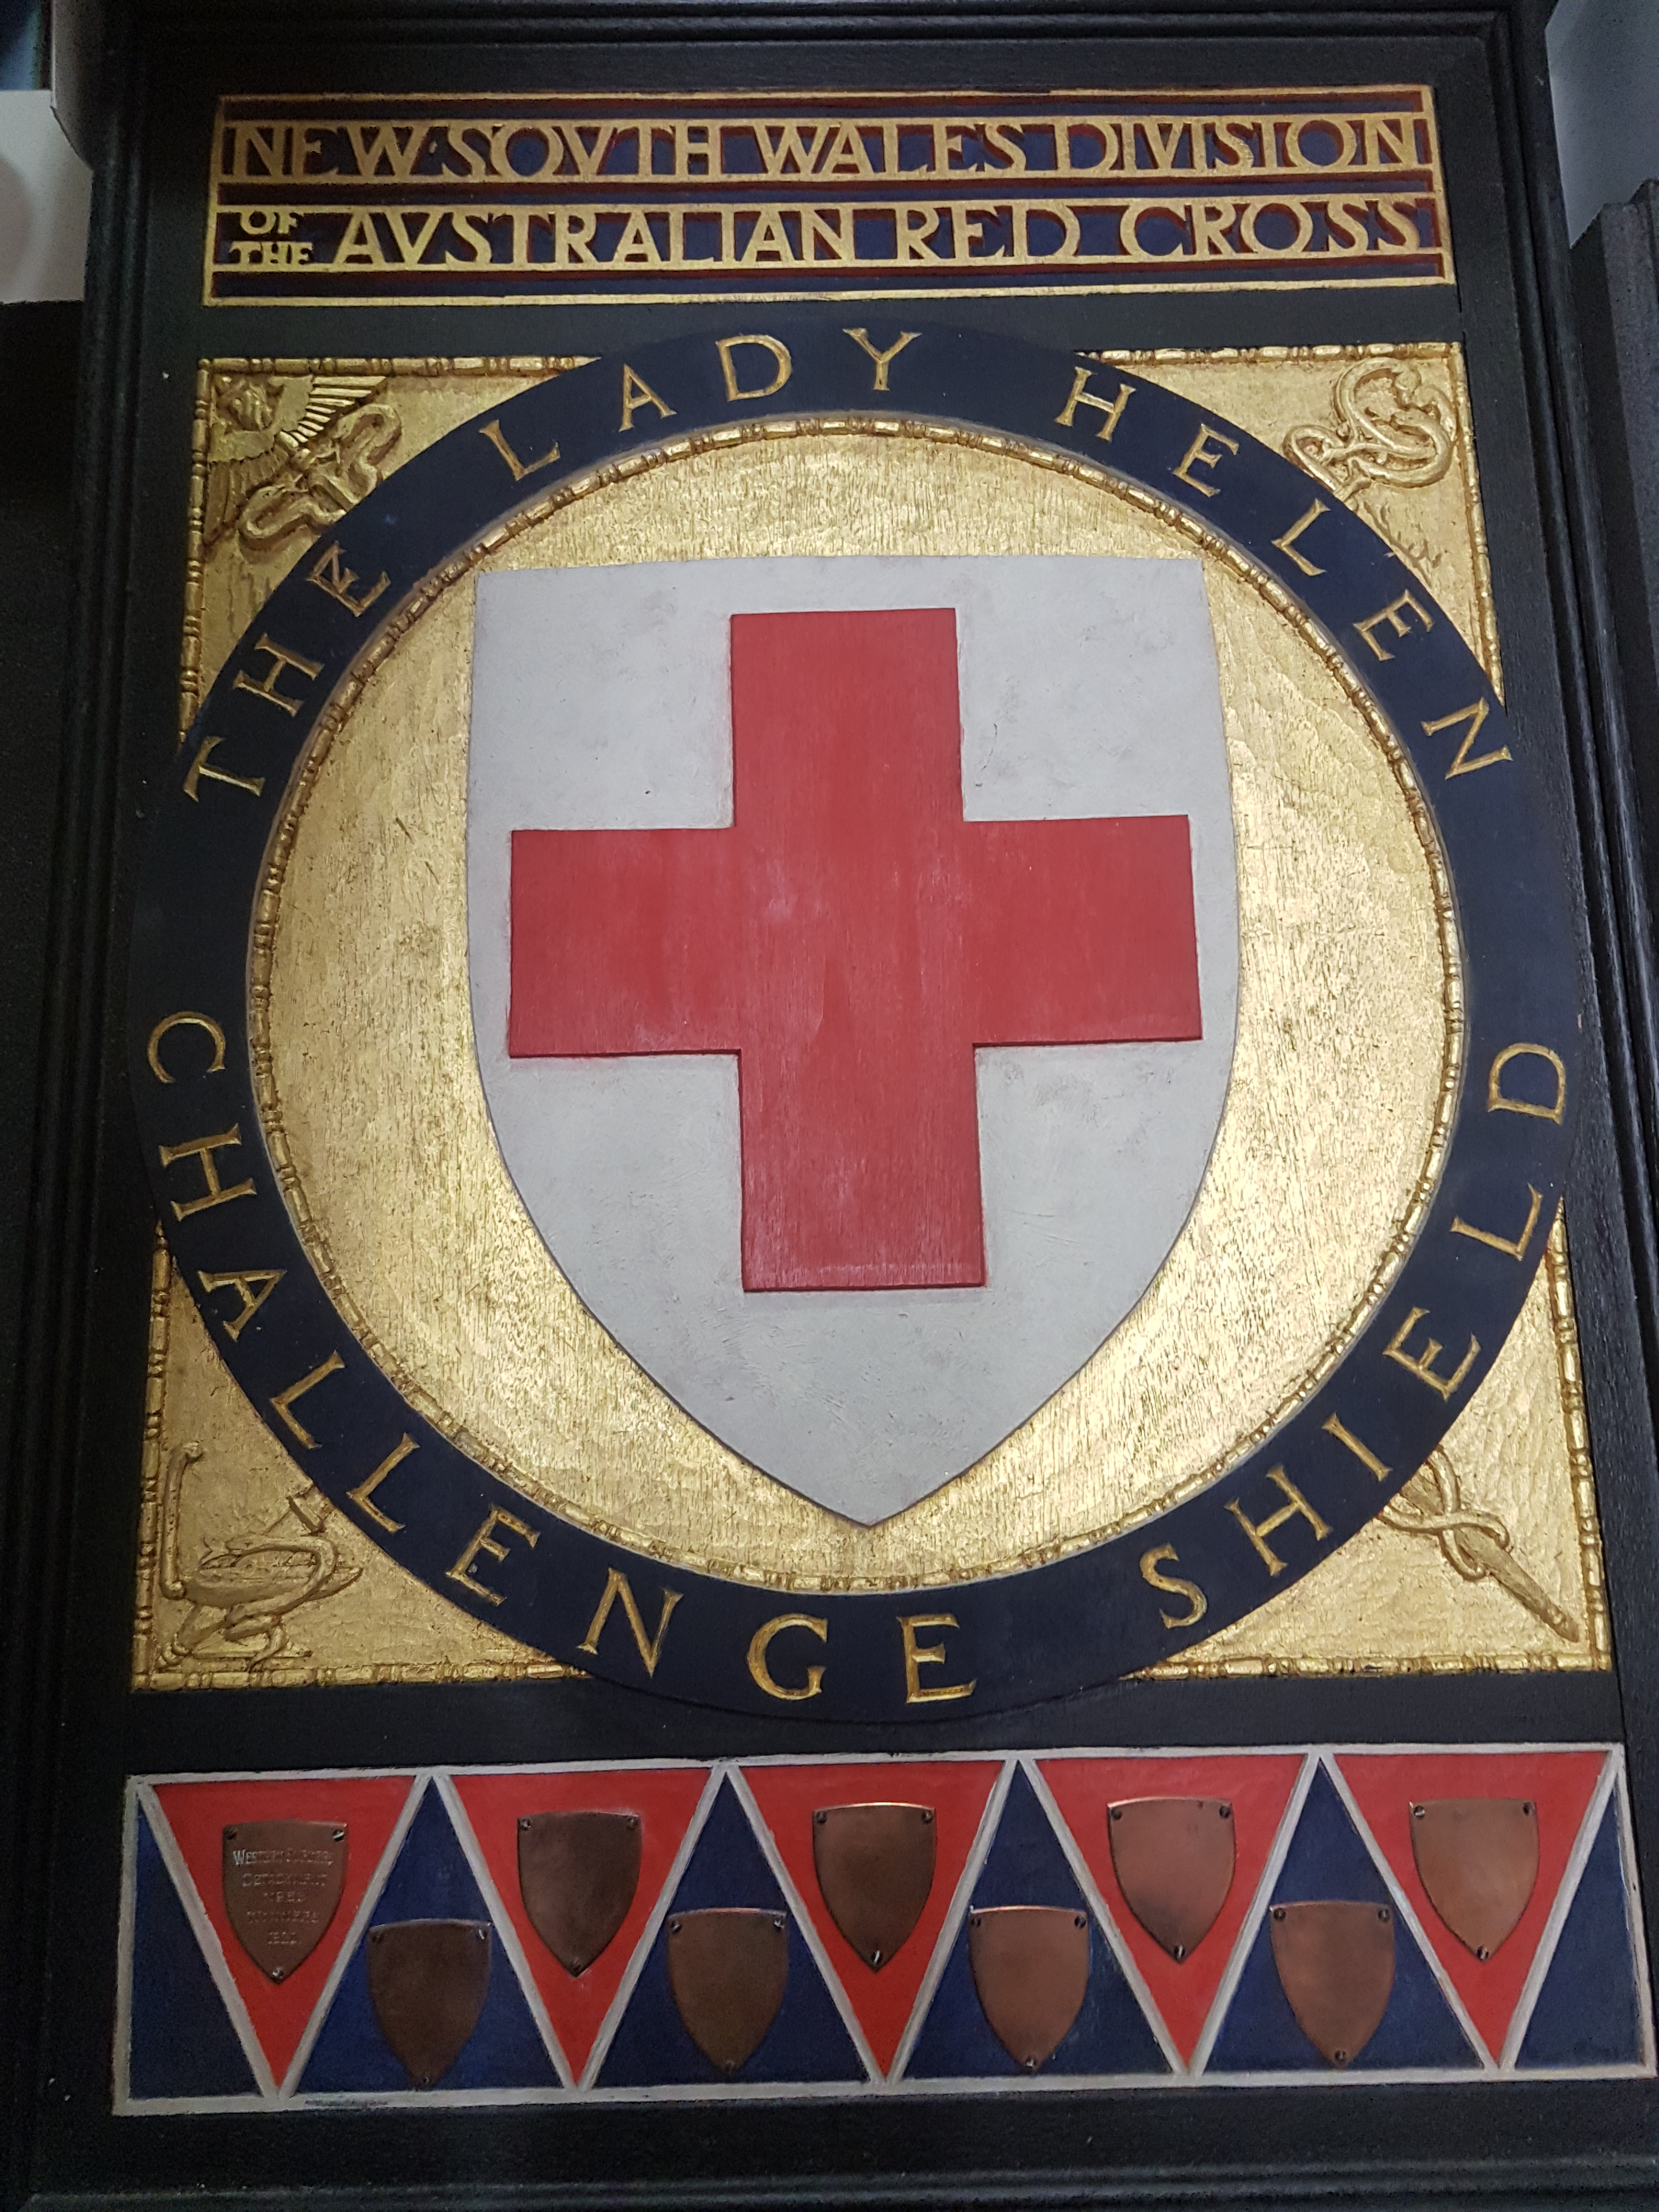 This beautiful woodcut shield, hand painted in gold and black with a red cross in the centre and decorated with brass plates, was designed by Professor L. Wilkinson of the University of Sydney and executed by Eirene Mort and Nora Weston.